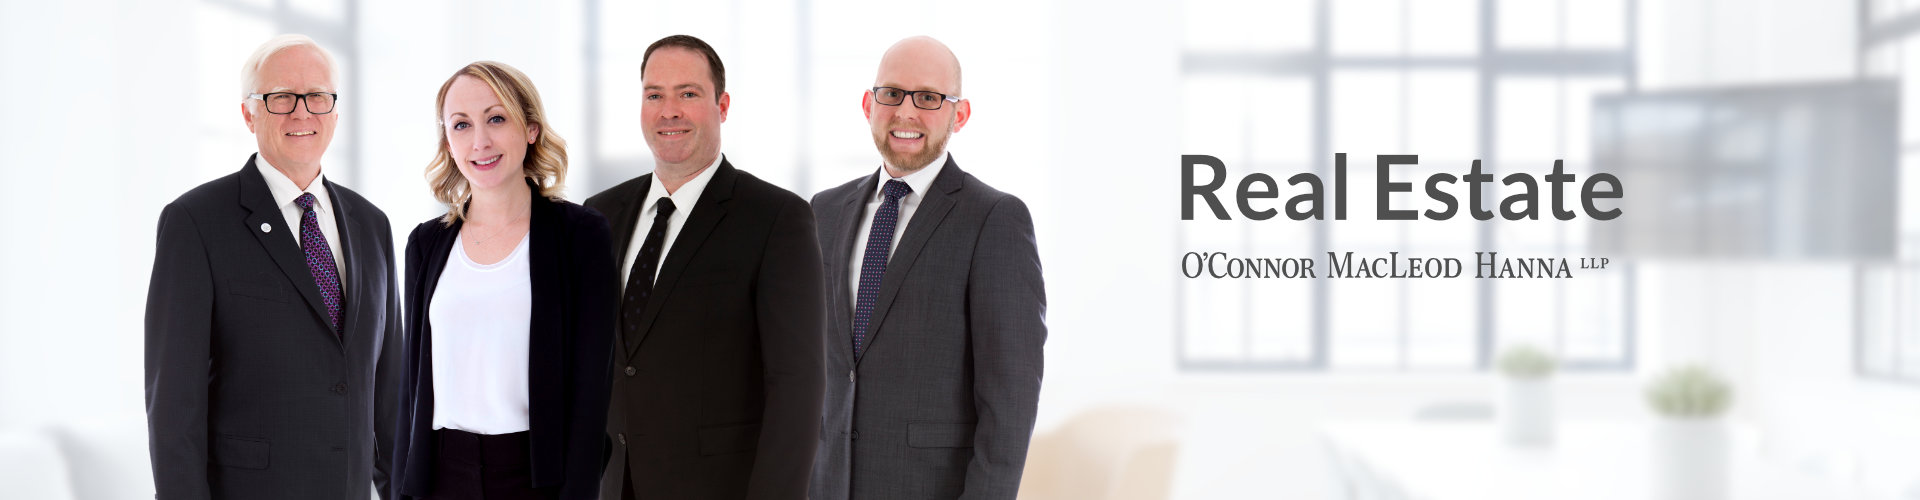 Real Estate Group Lawyers